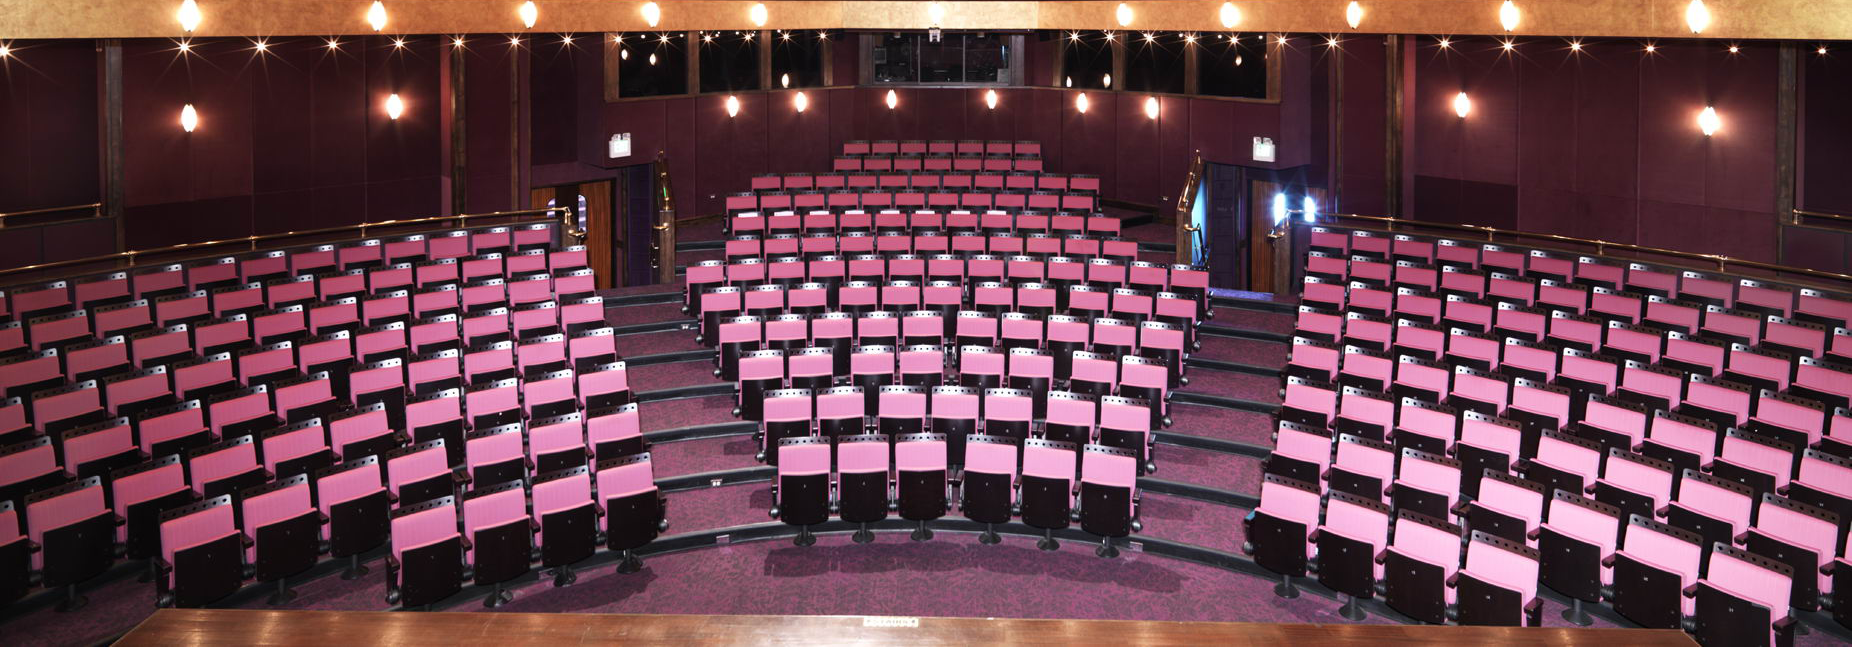 3-auditorium-interior.png